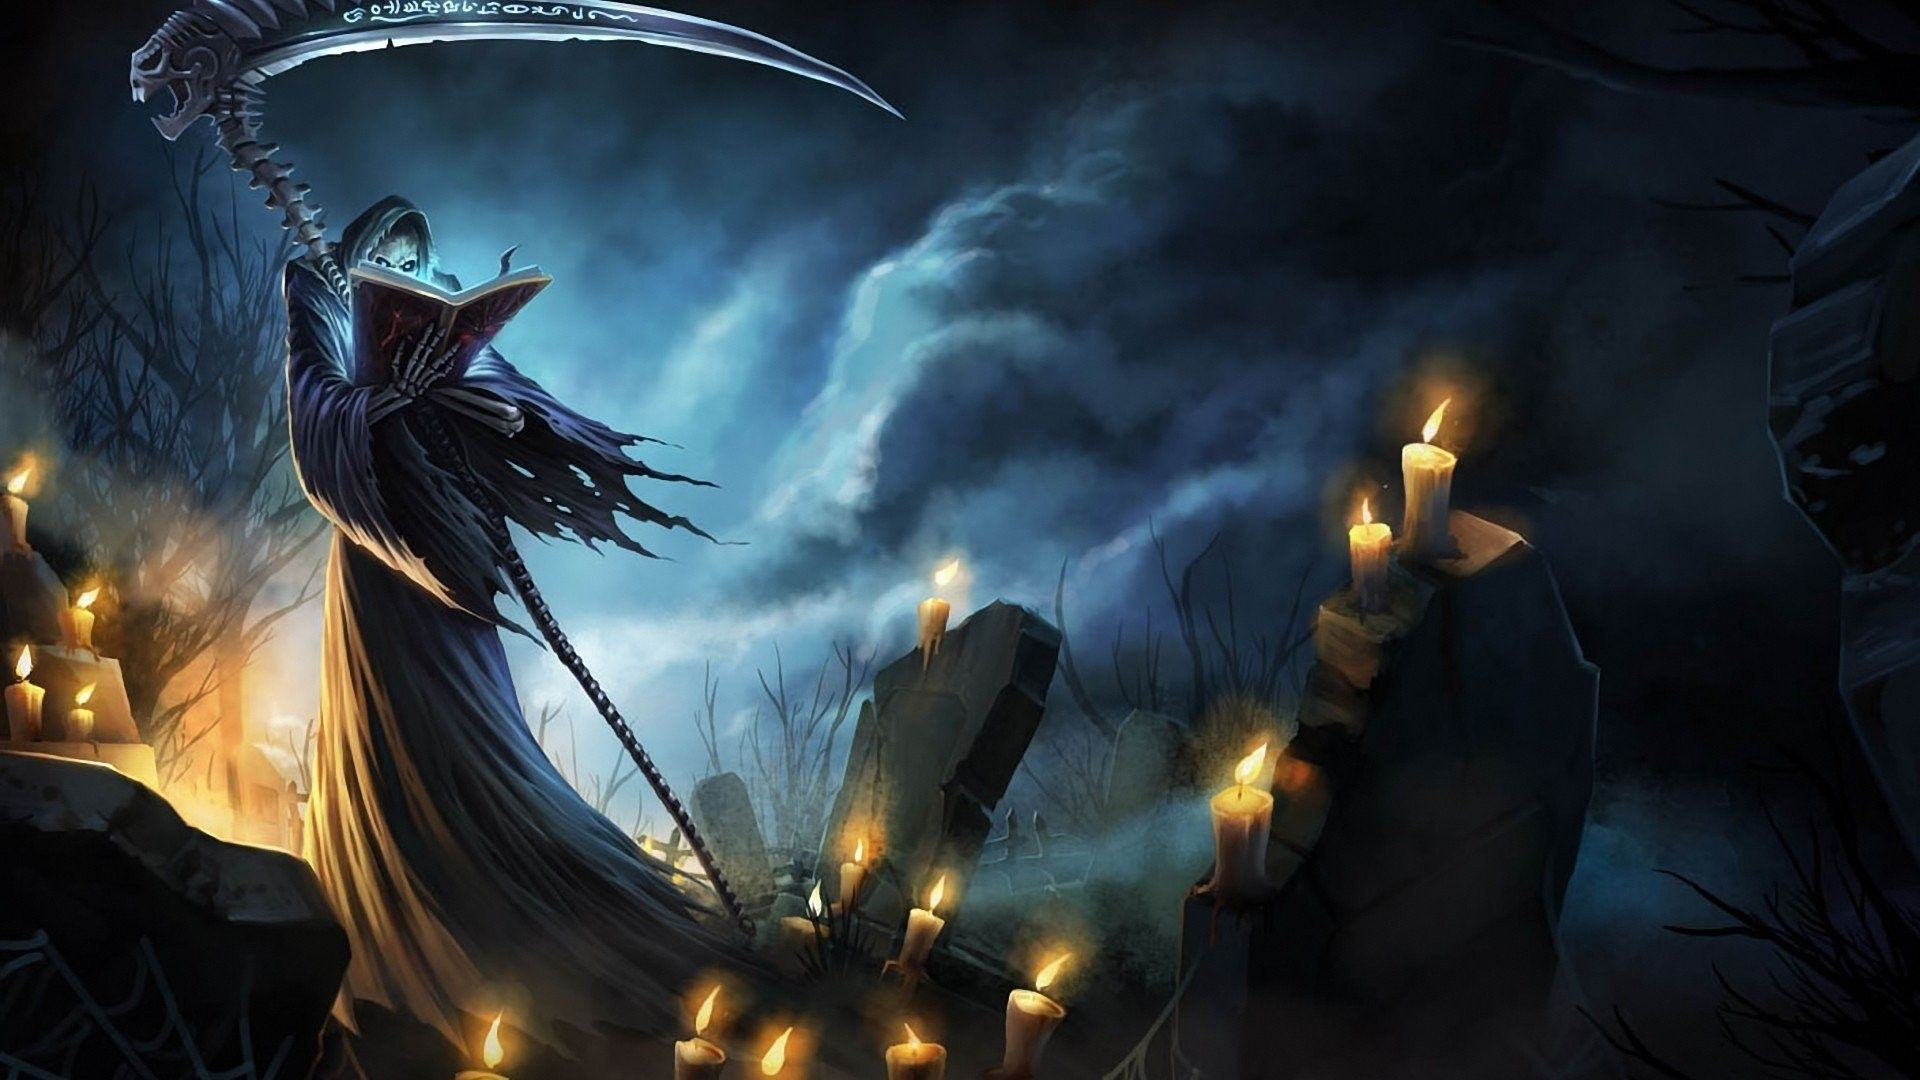 Badass Grim Reaper Wallpaper Posted By Ryan Walker